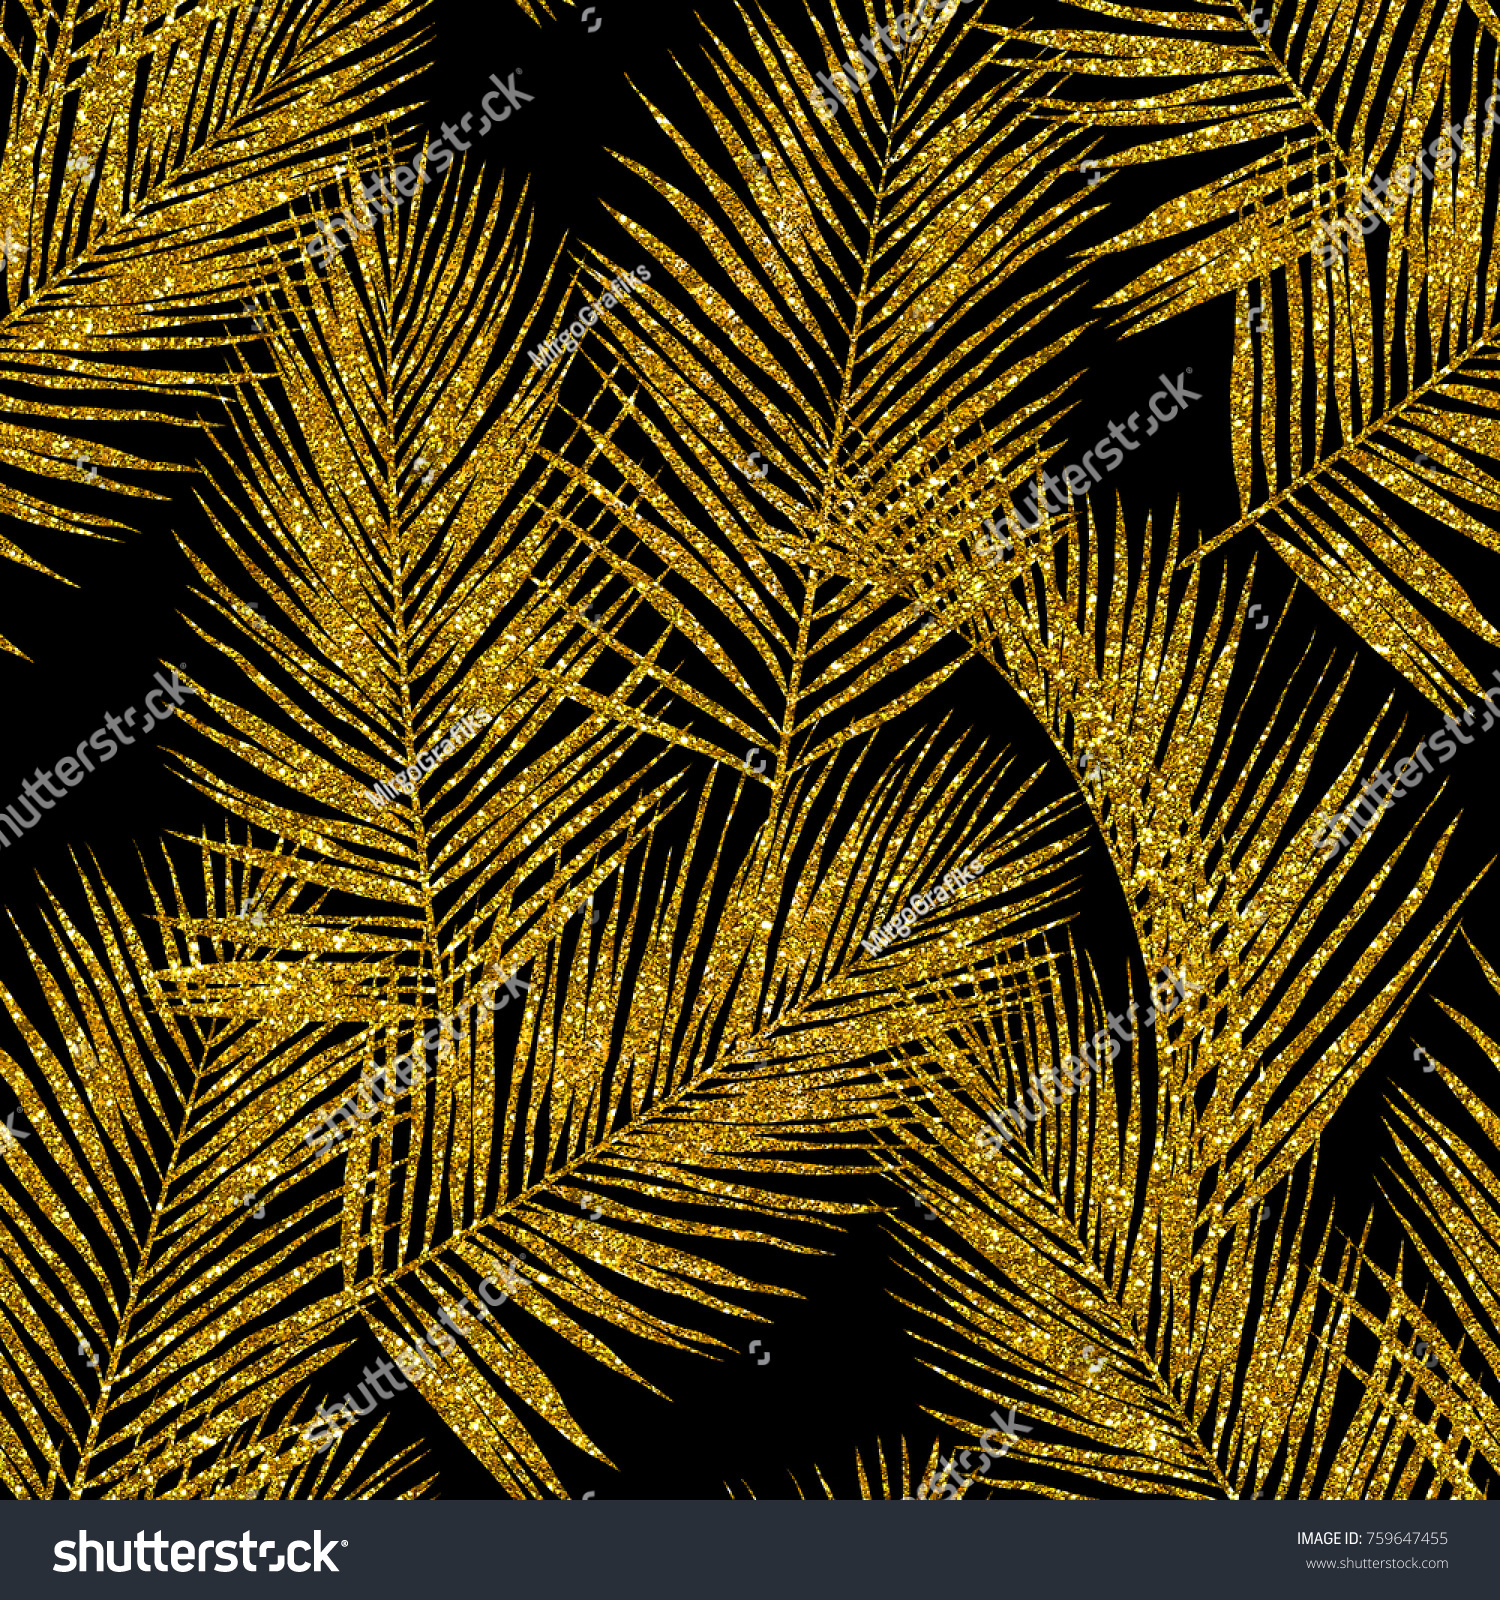 Download Wallpaper High Quality Glitter - stock-photo-gold-glitter-palm-leaves-on-black-background-seamless-hand-drawn-pattern-high-quality-jpg-image-759647455  Picture_792966.jpg